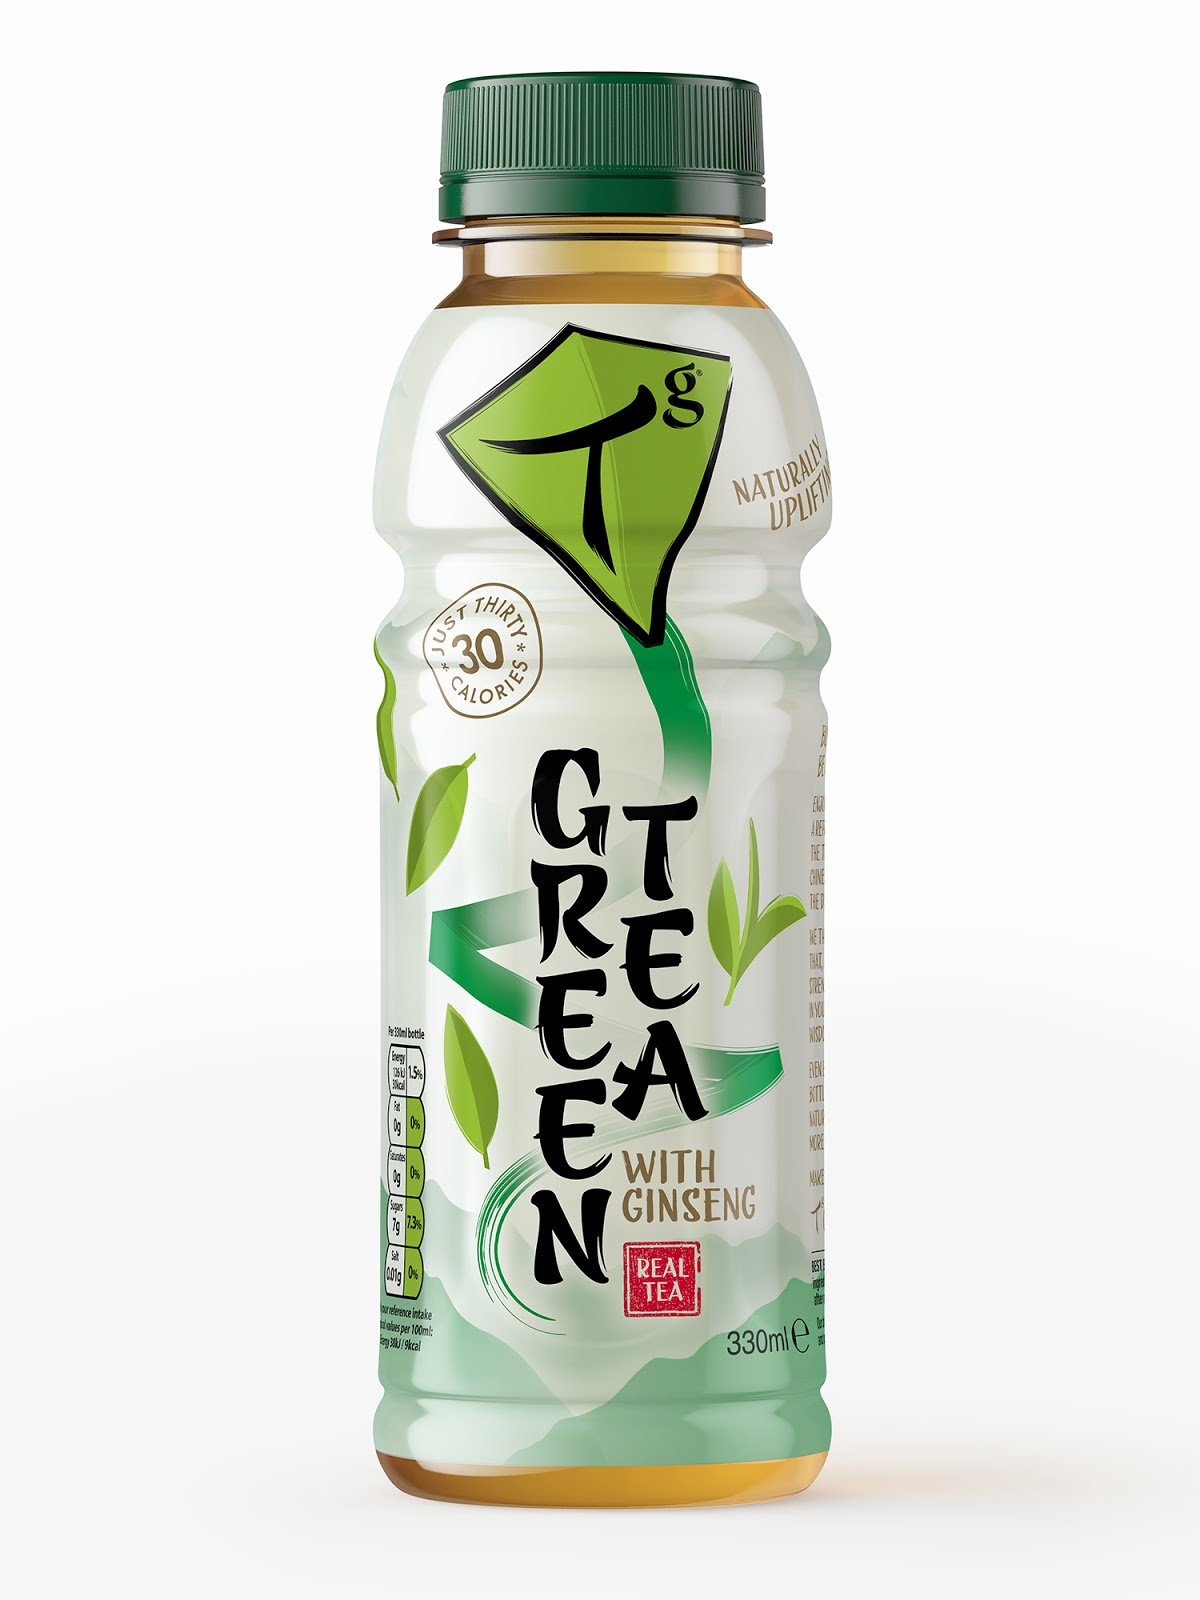 RTD Tea Market Is Growing Faster Than Soda